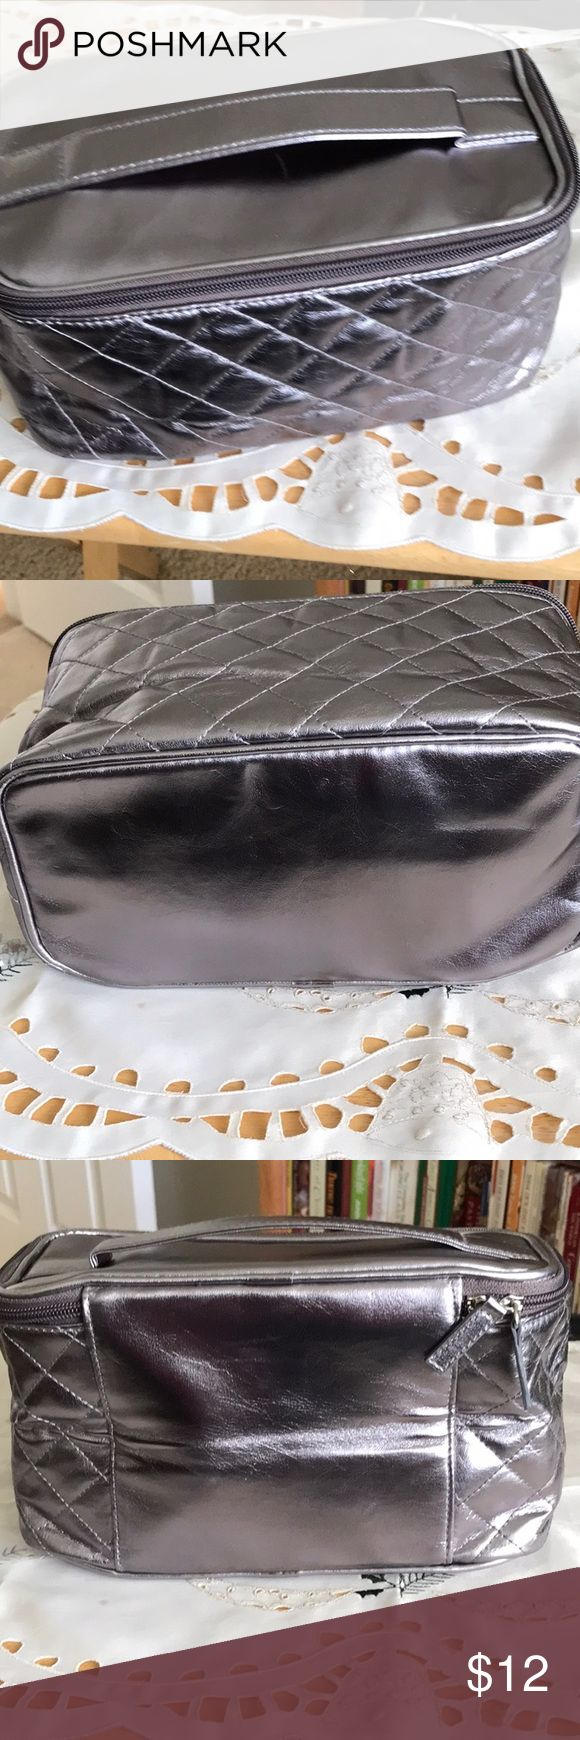 """Avon quilted Train case.  NWOT Avon quilted train/makeup case. Silver in color New, never used, removed f I'm packing to take picture Size 9.5"""" x 4.5"""" x 5.5"""" NWOT, very cute bag Avon Bags Cosmetic Bags & Cases"""